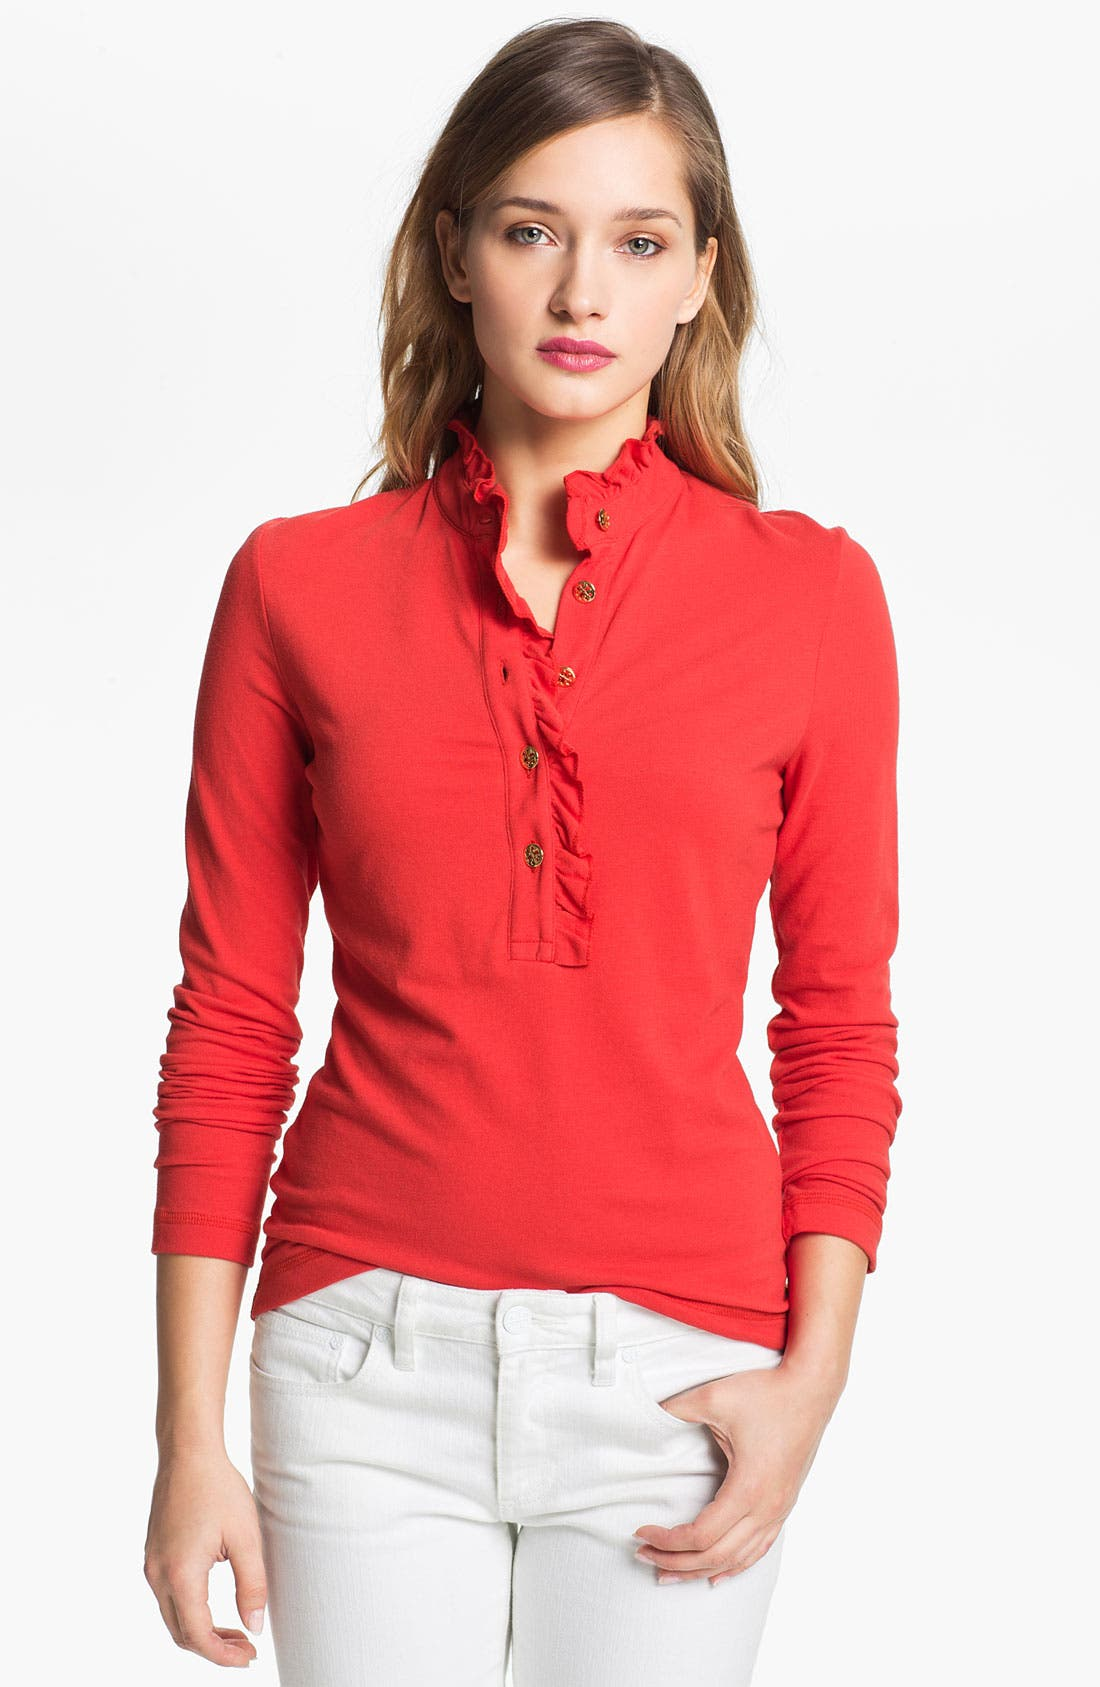 Alternate Image 1 Selected - Tory Burch 'Lidia' Long Sleeve Polo